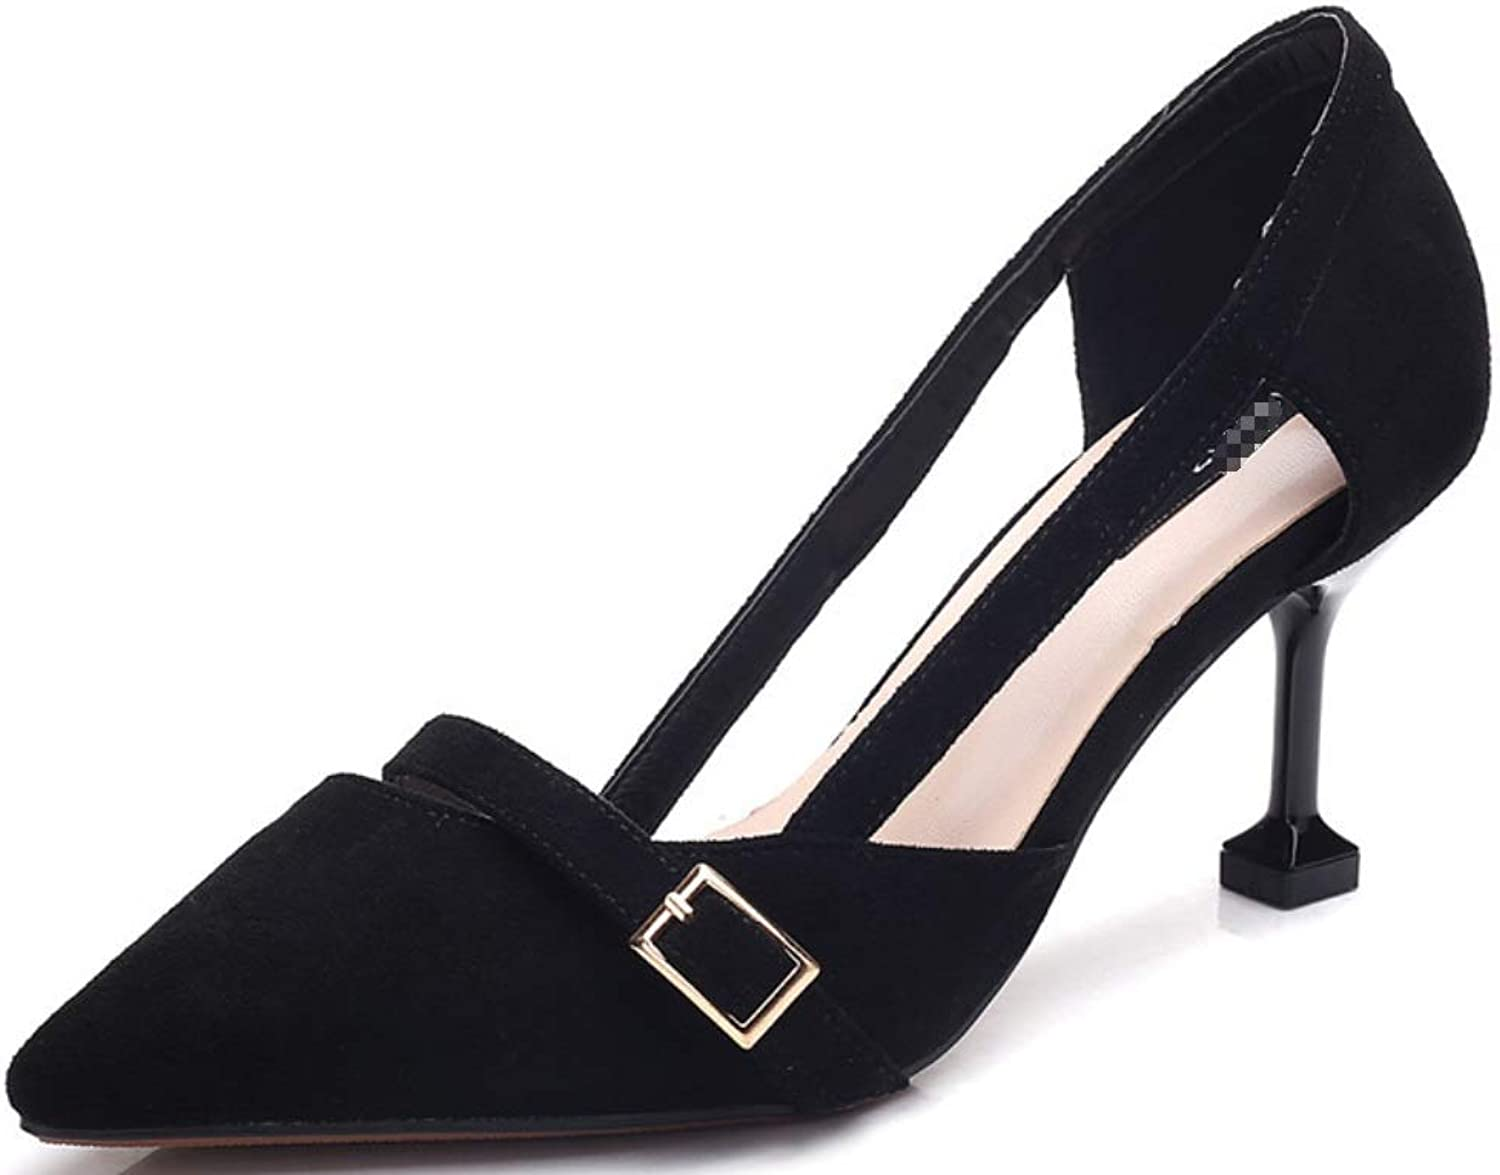 Ladies Super High Heels-Sexy Pointy Sandals-Pure color Velvet Buckle shoes Formal, Wedding, Party Comfort Classic Series Zhhzz